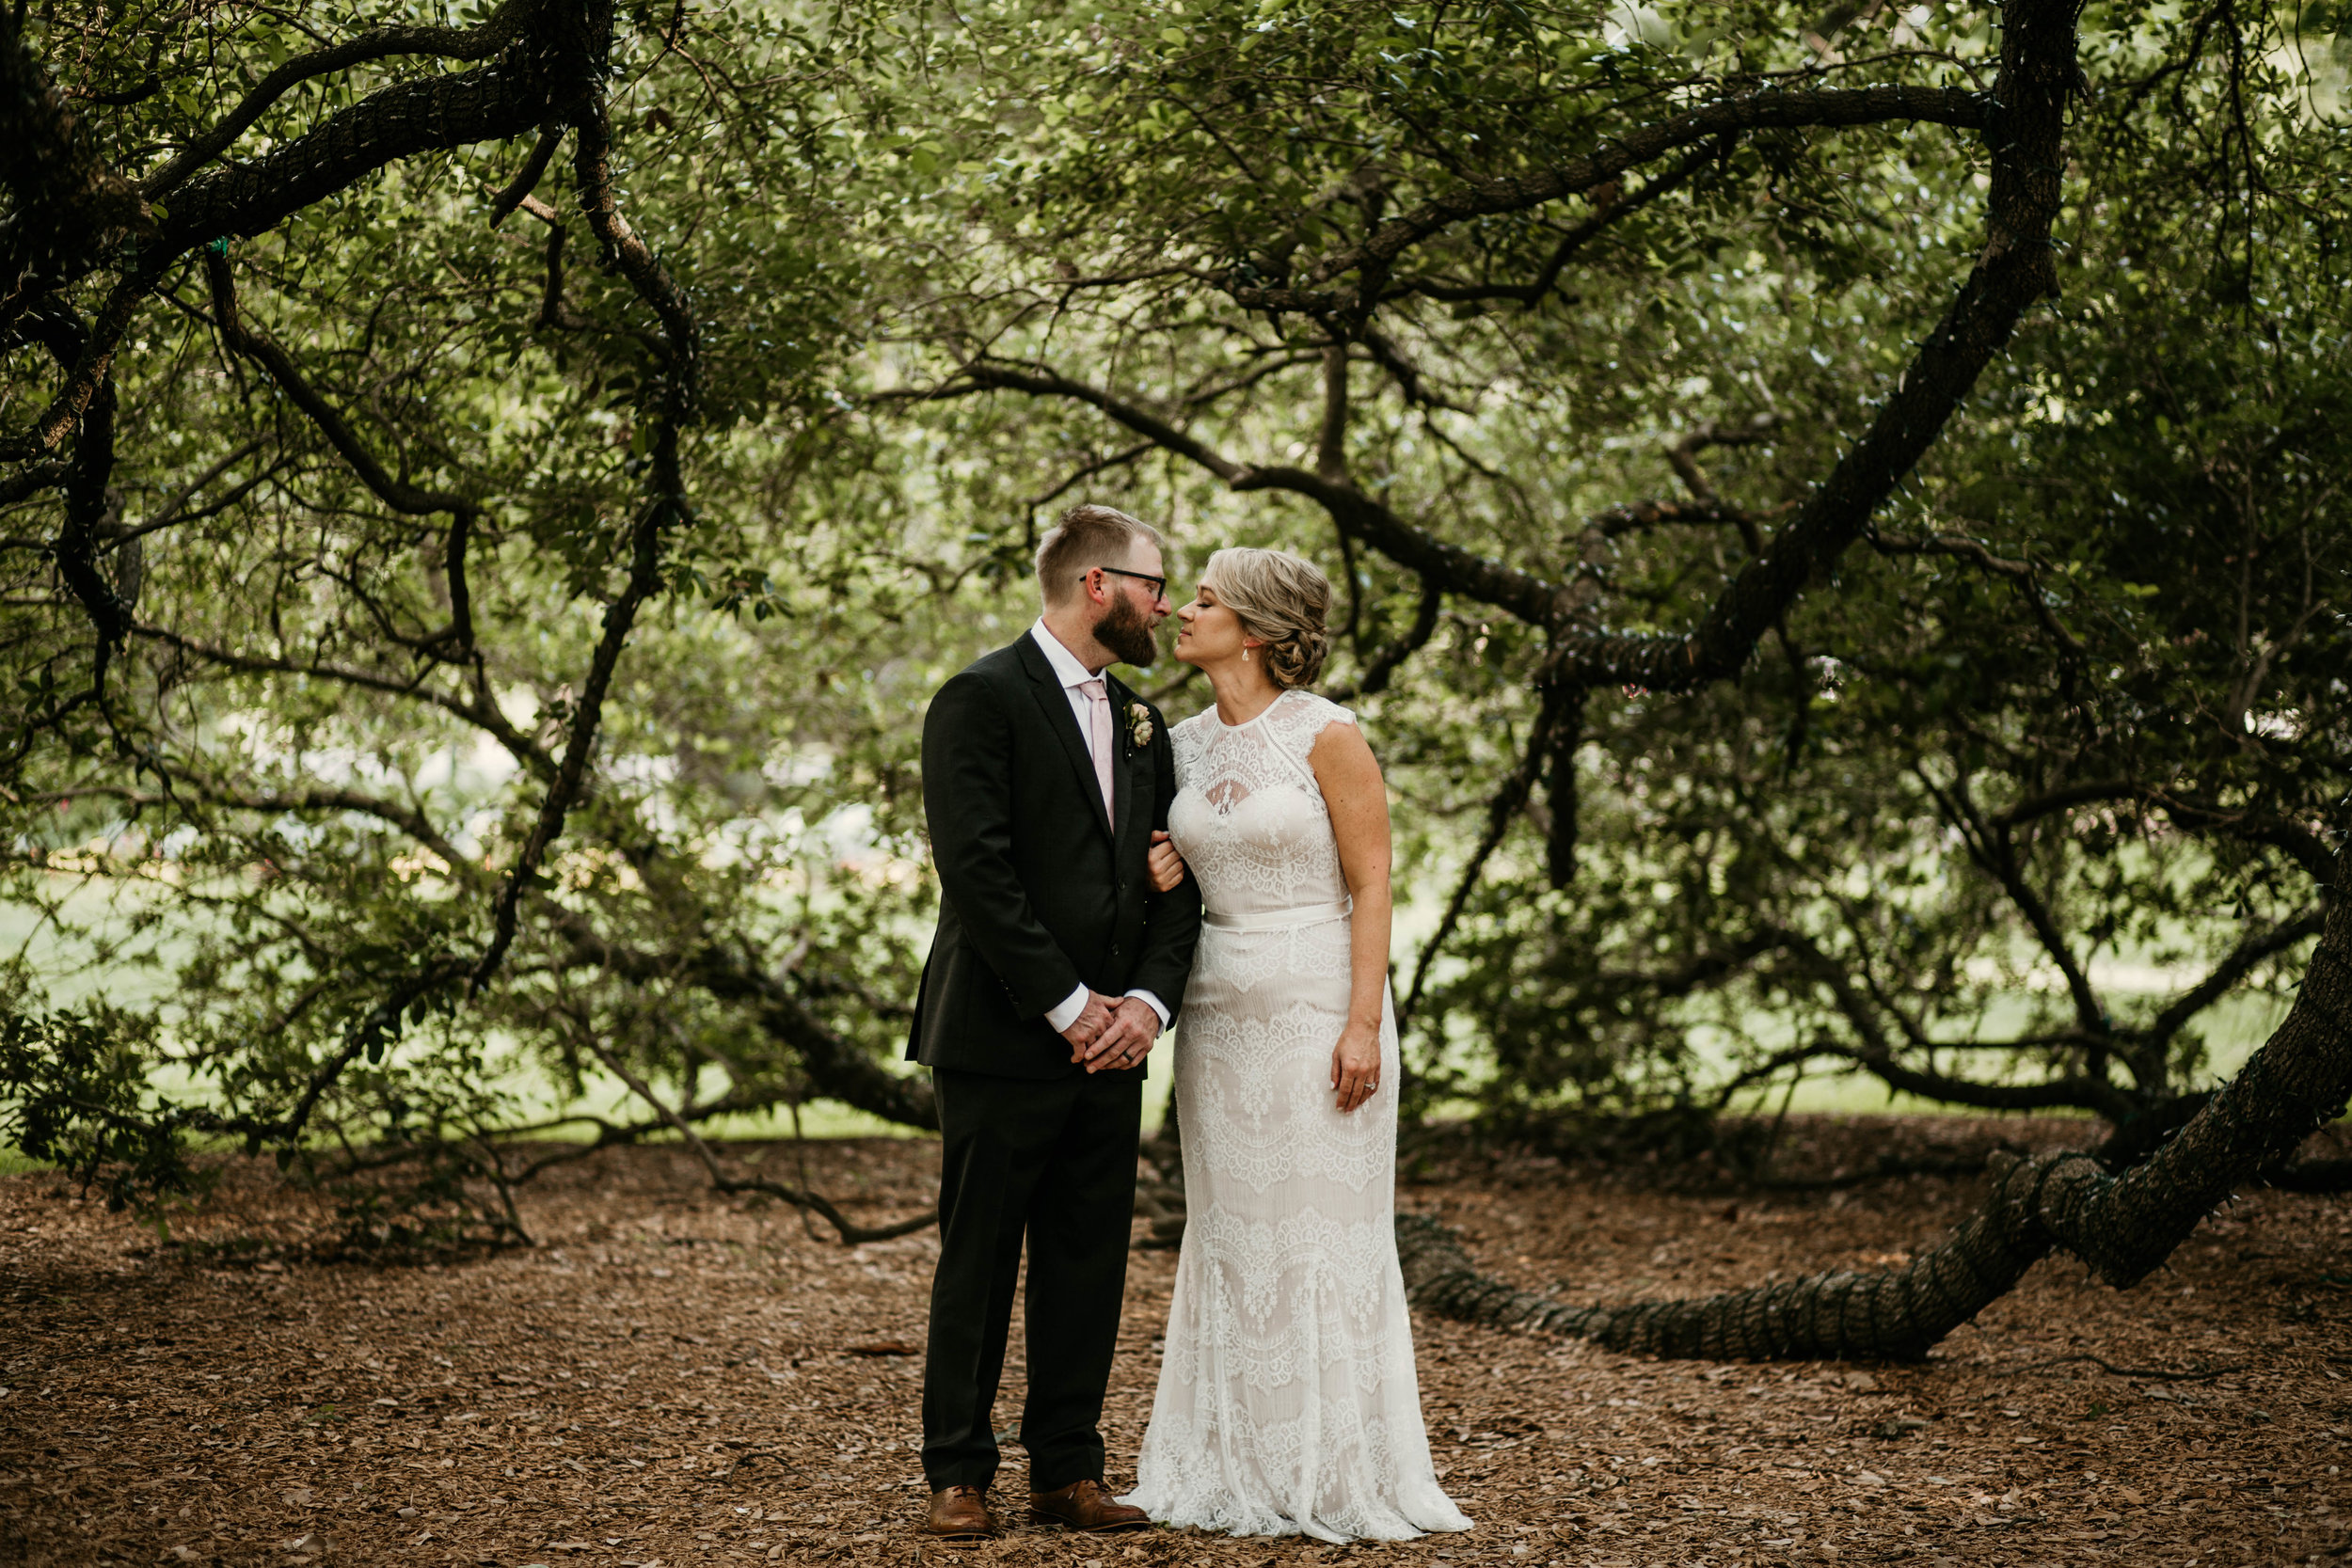 Click here to see more of the A + C Wedding!